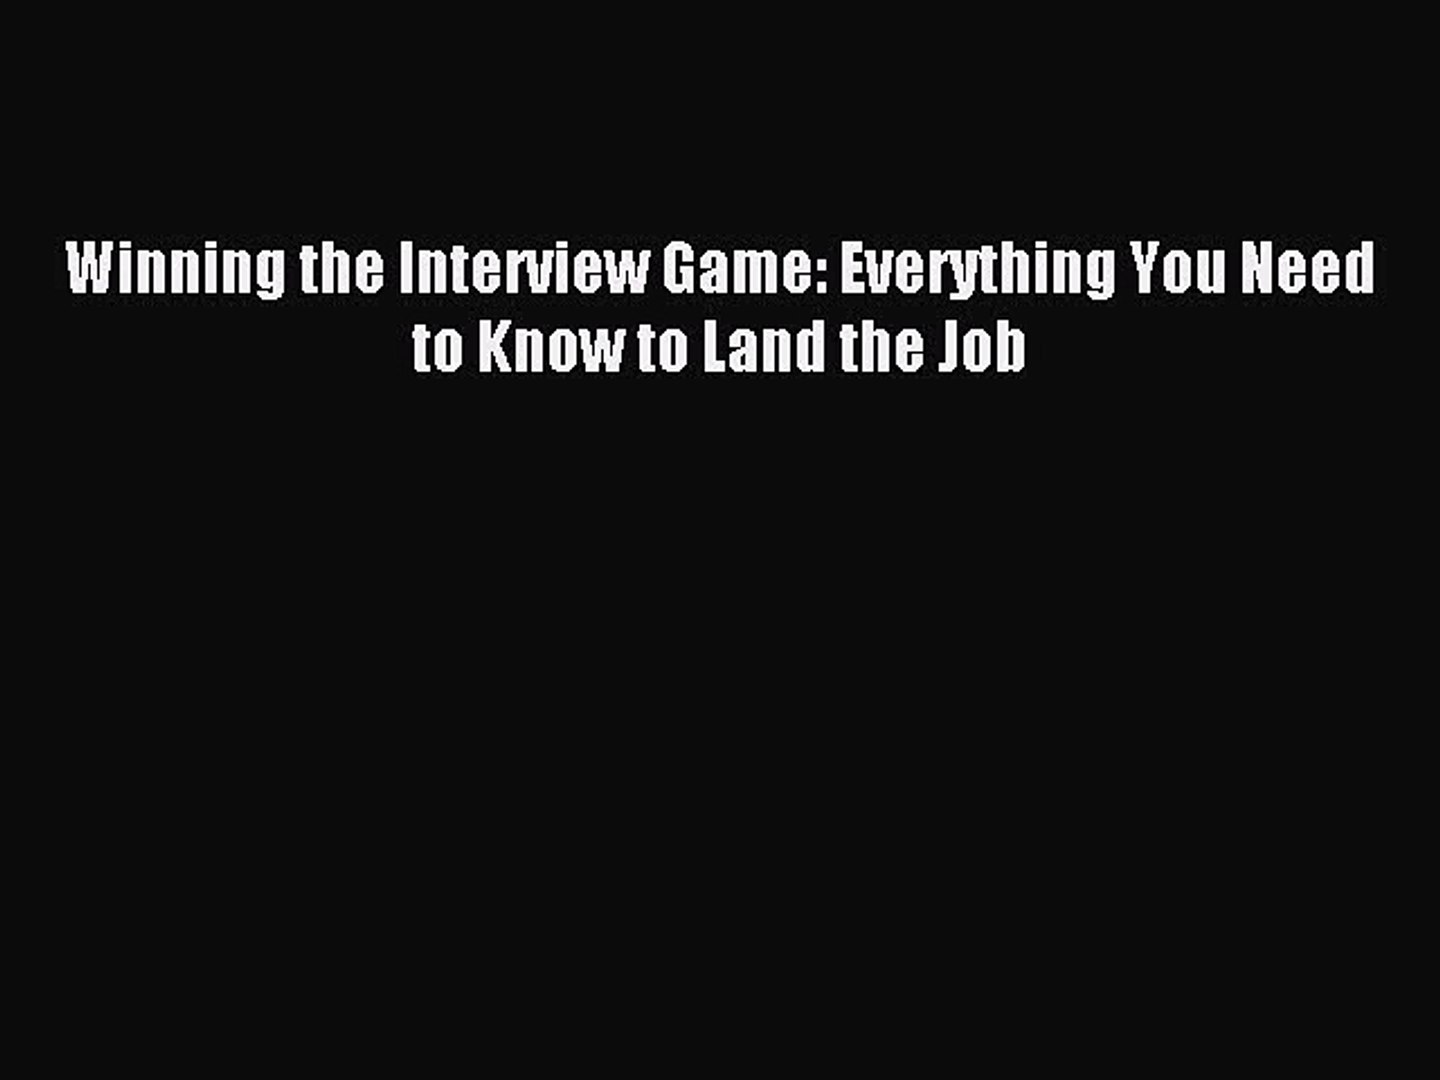 Read Winning the Interview Game: Everything You Need to Know to Land the Job ebook textbooks